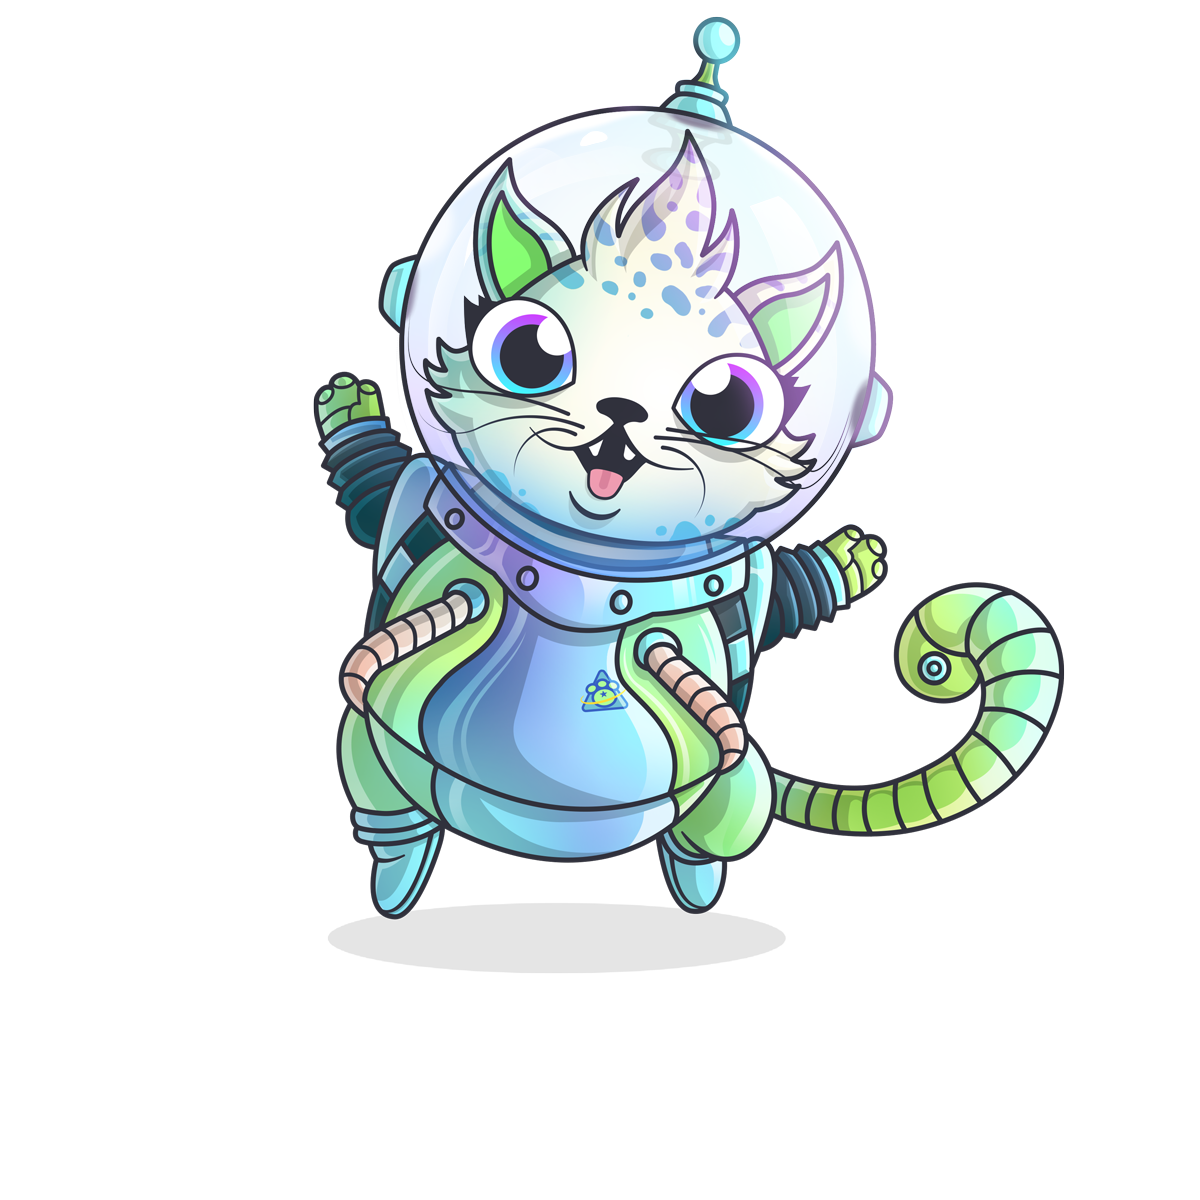 cryptokitty #1821237